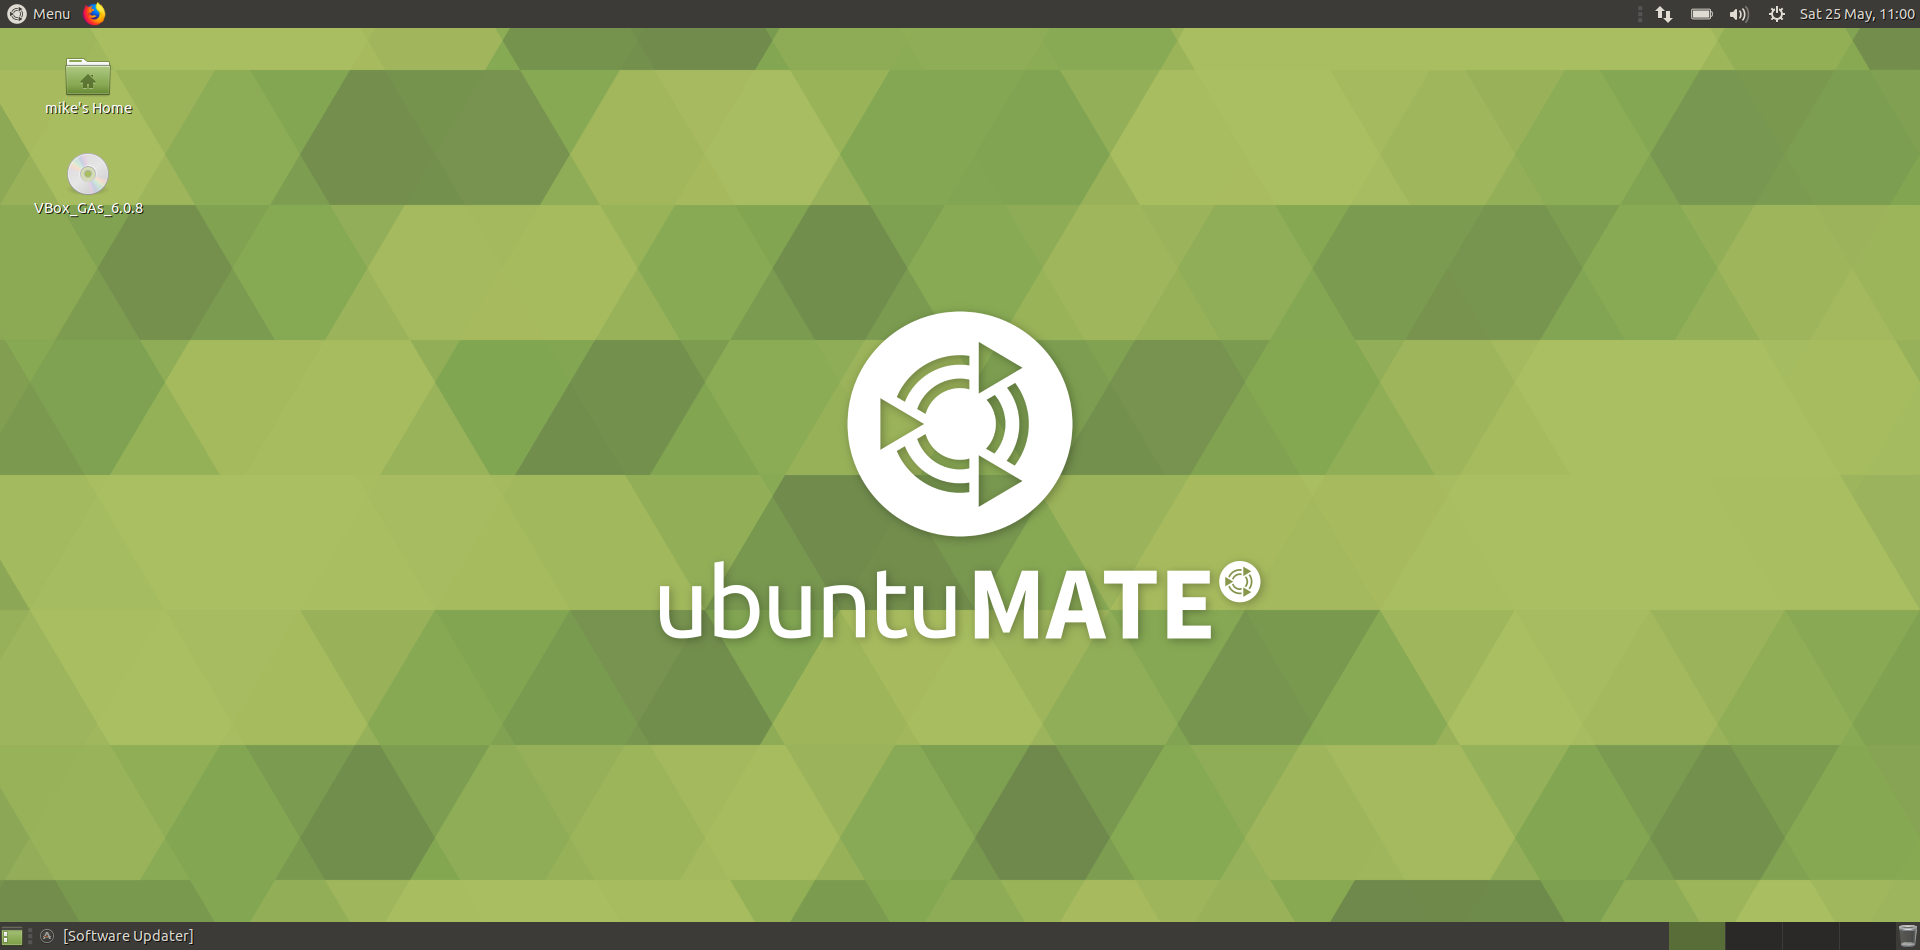 ubuntu mate - The desktop